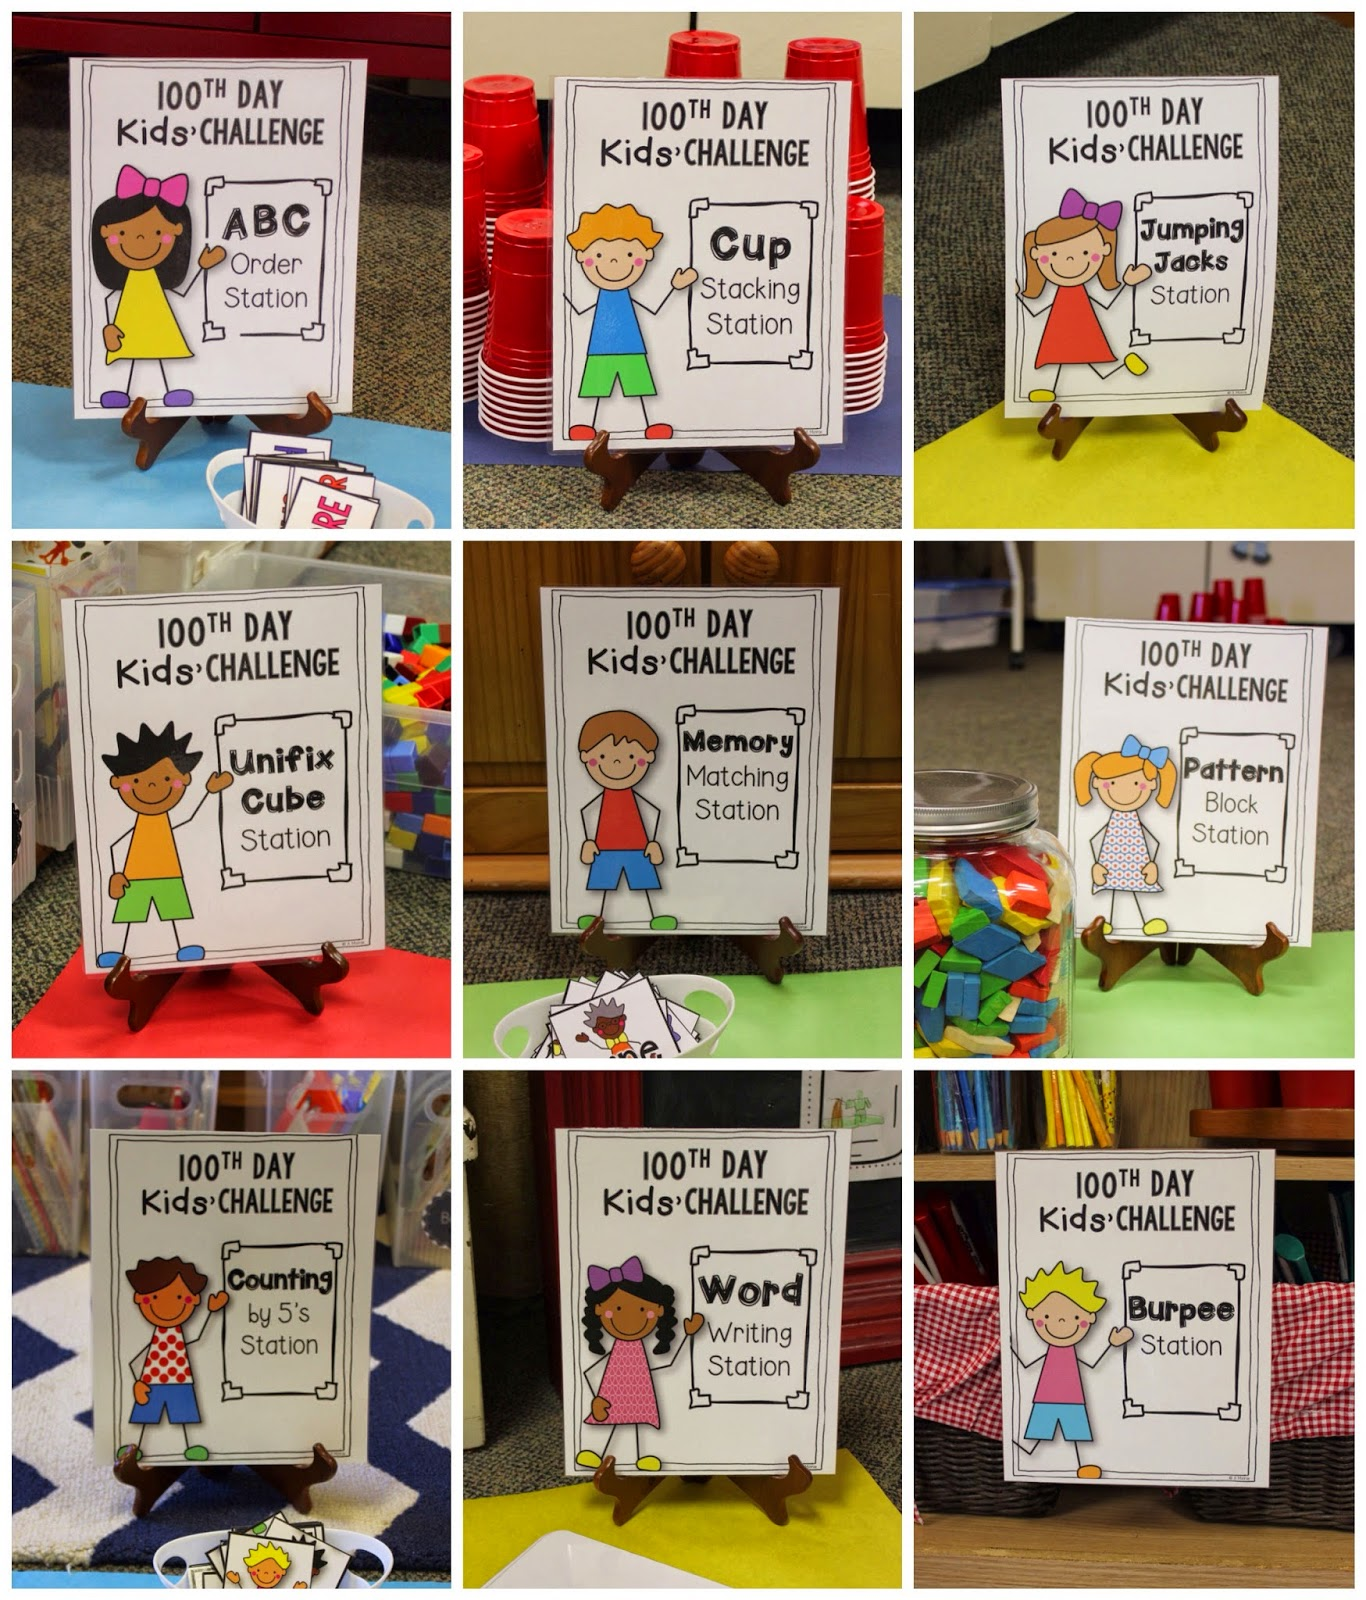 School Is A Happy Place: Let's Celebrate The 100th Day